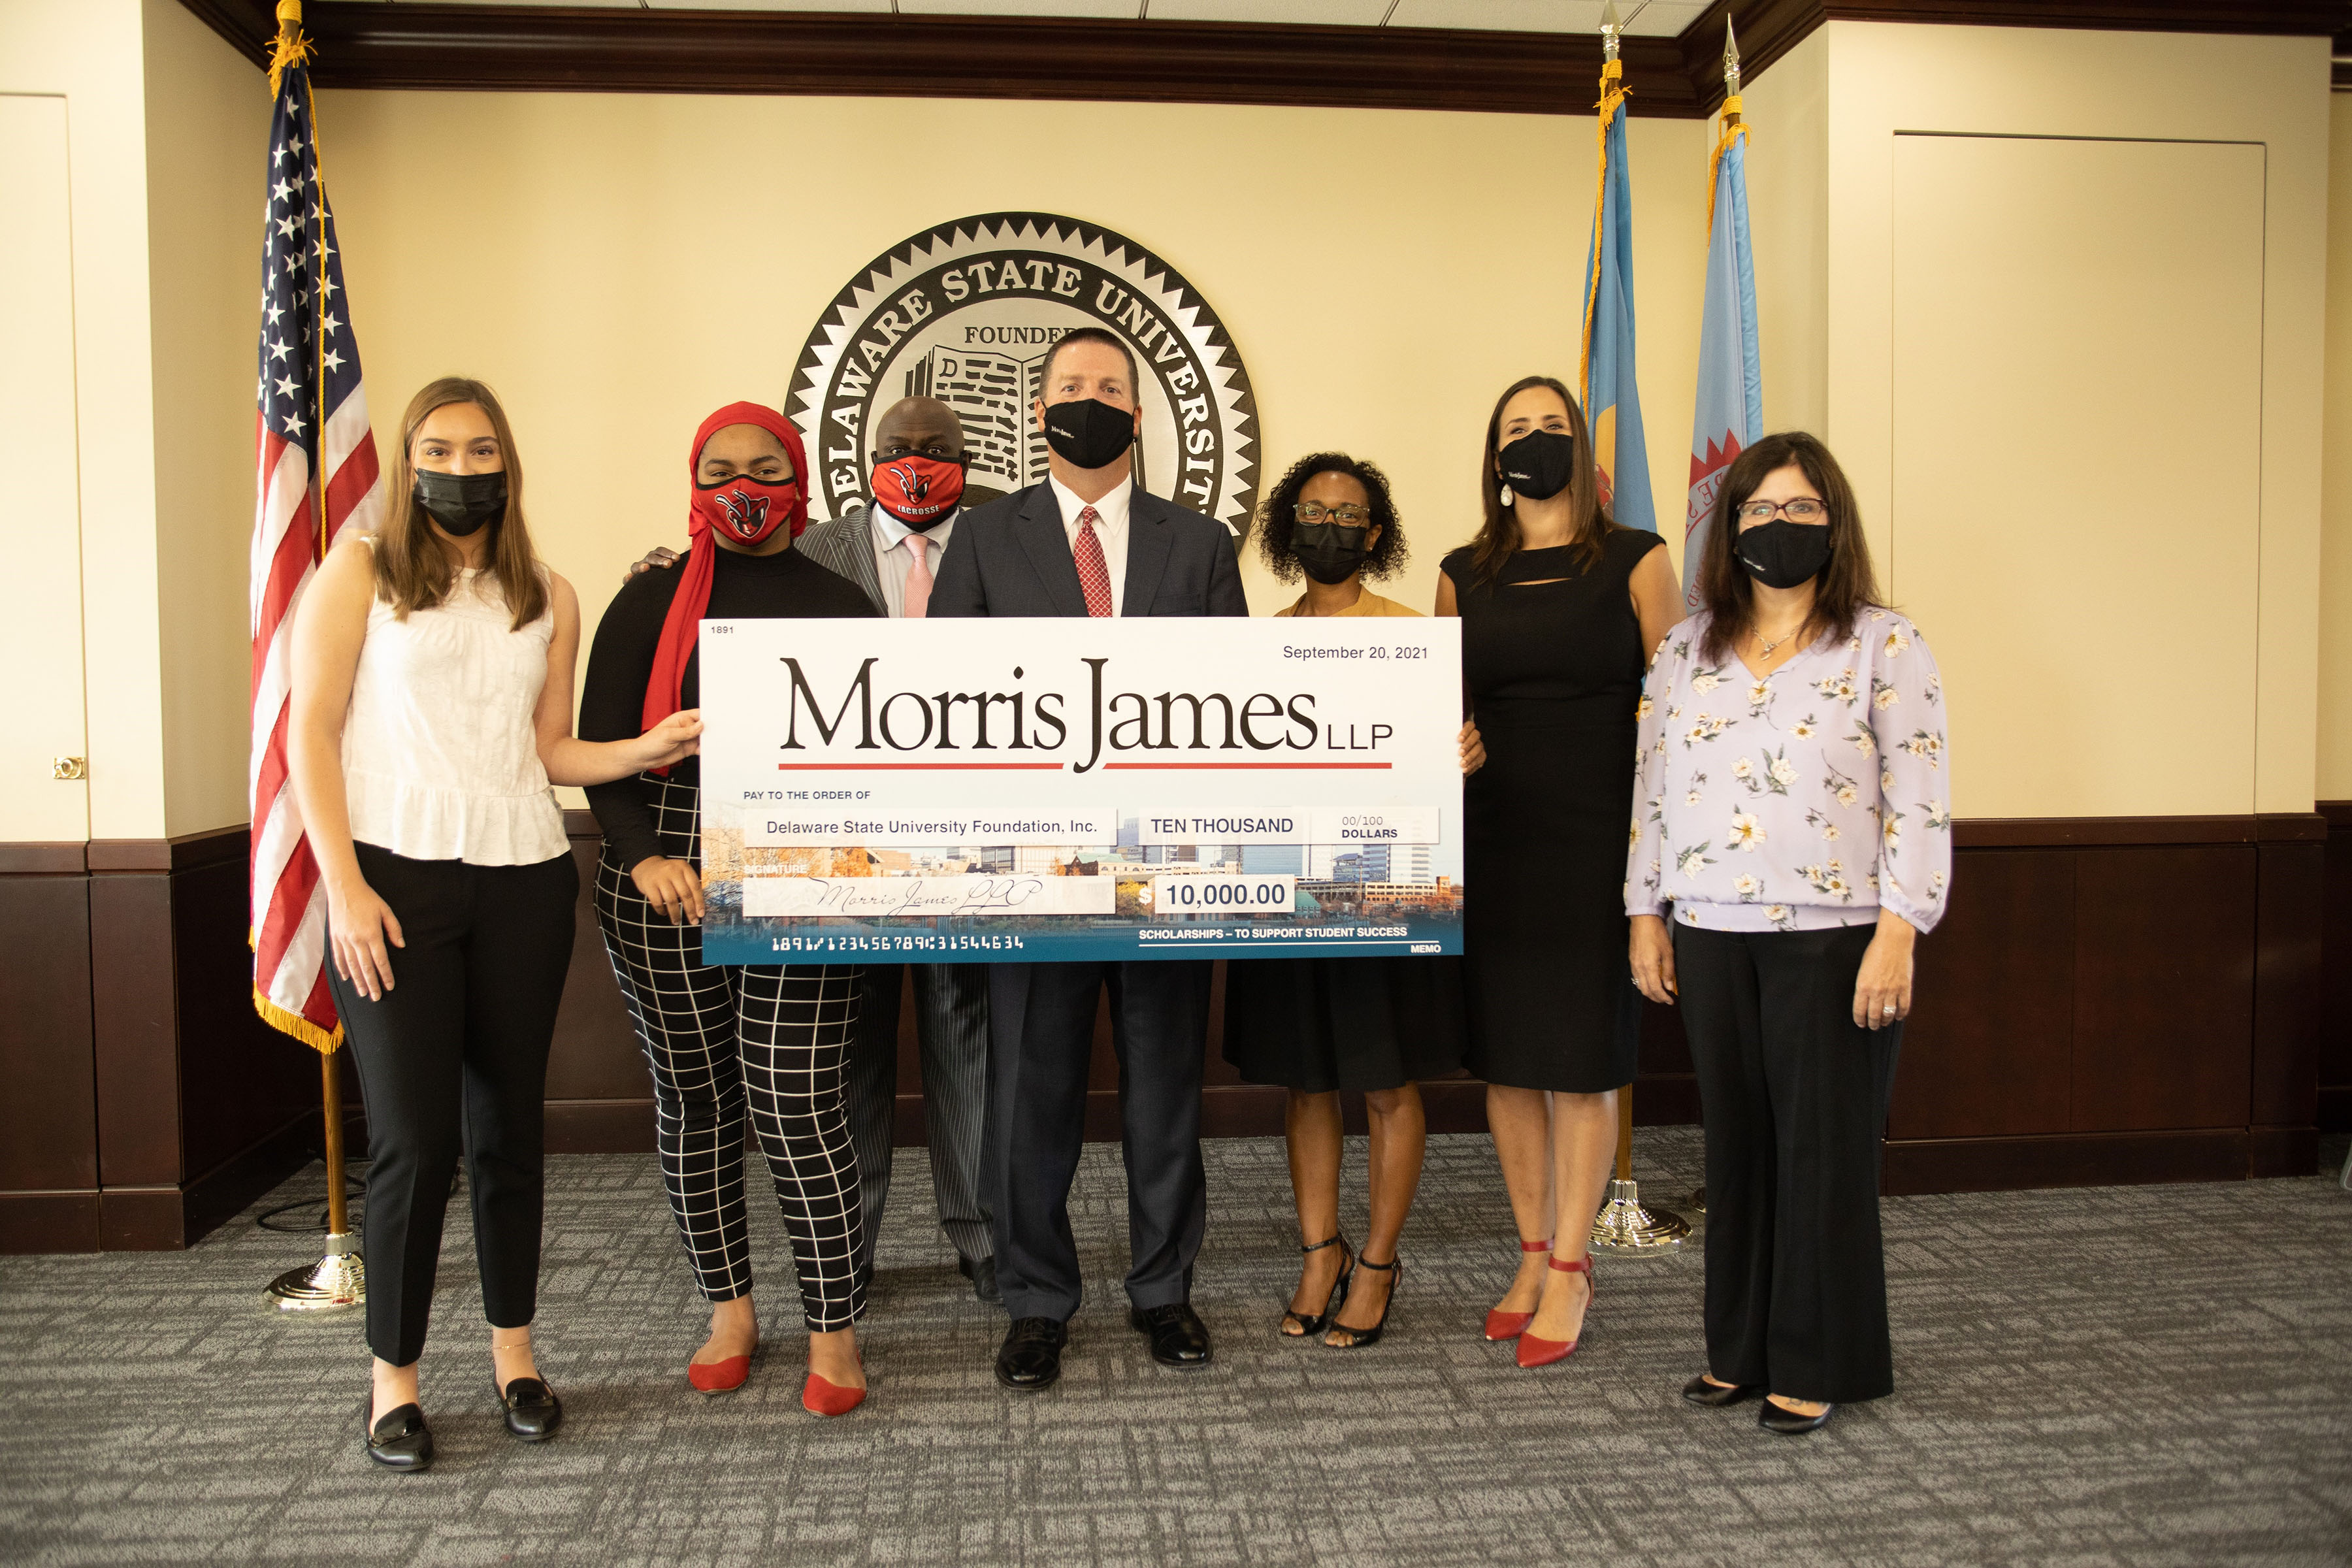 Morris James gives financial support for Law Studies students